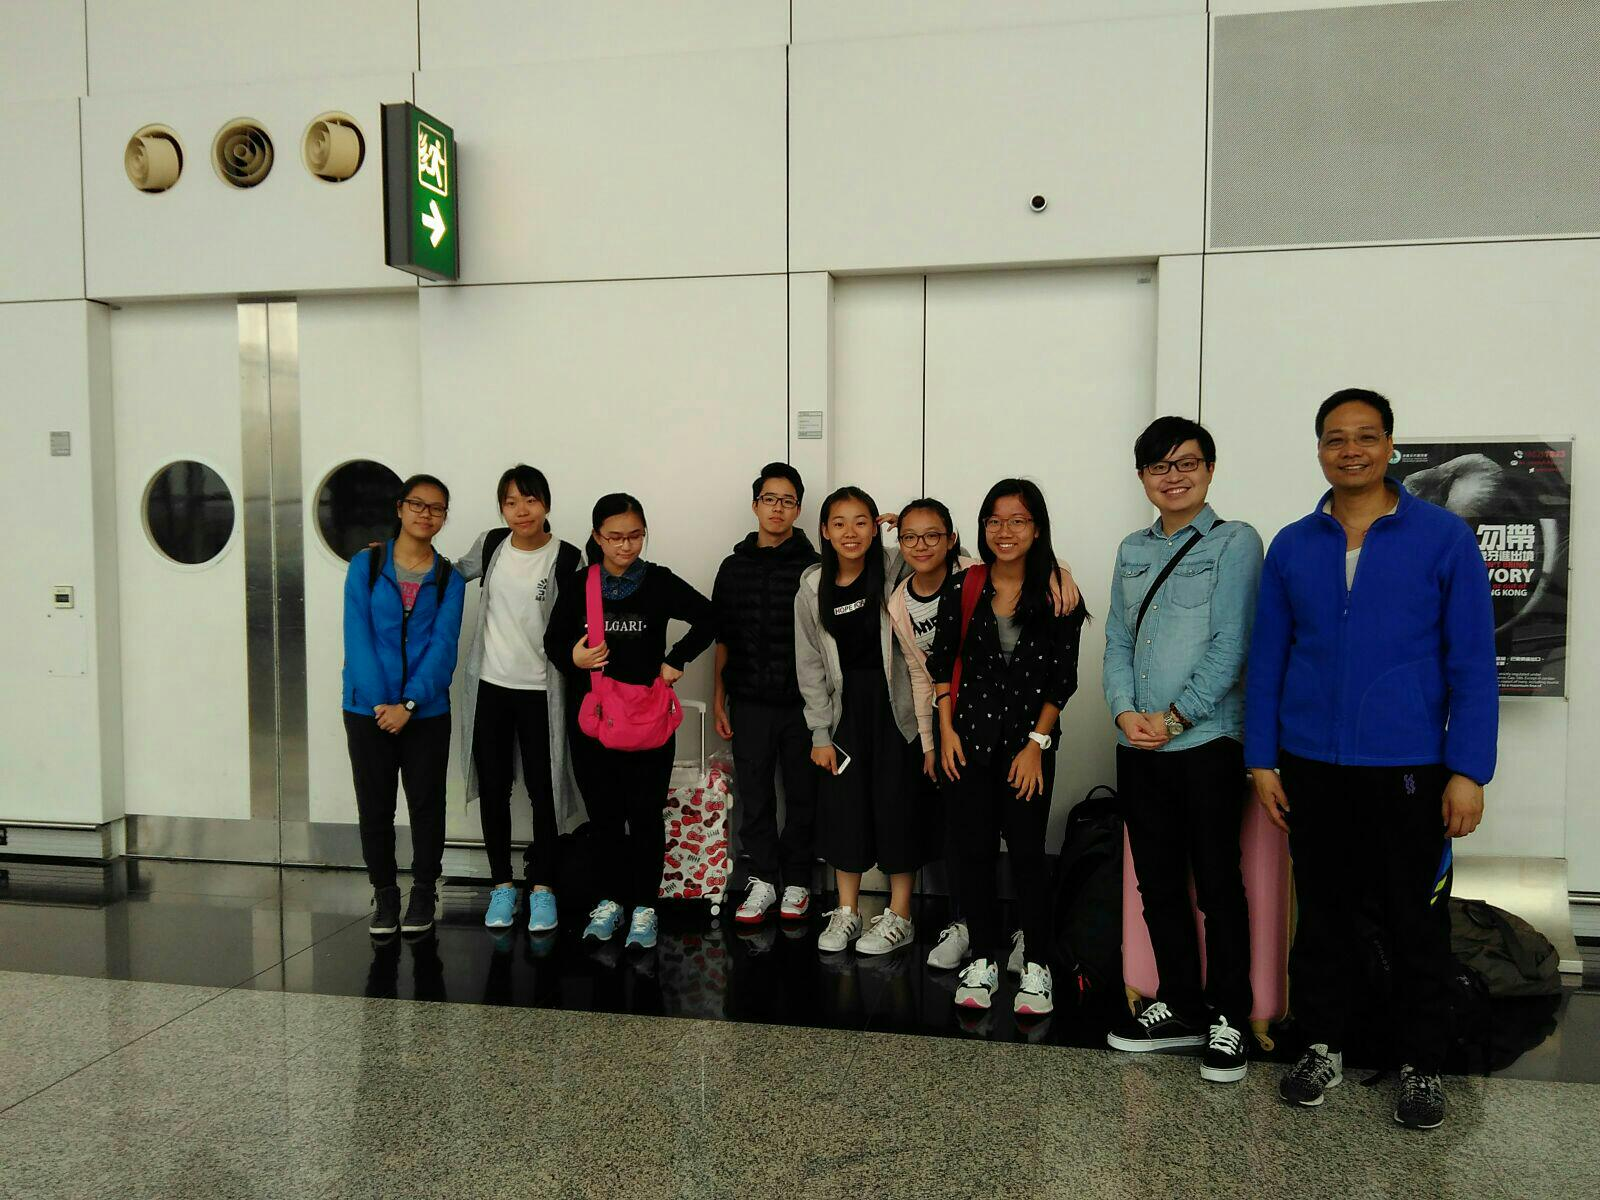 On 13 April,2017, we were ready to start off our journey to Nanjing!